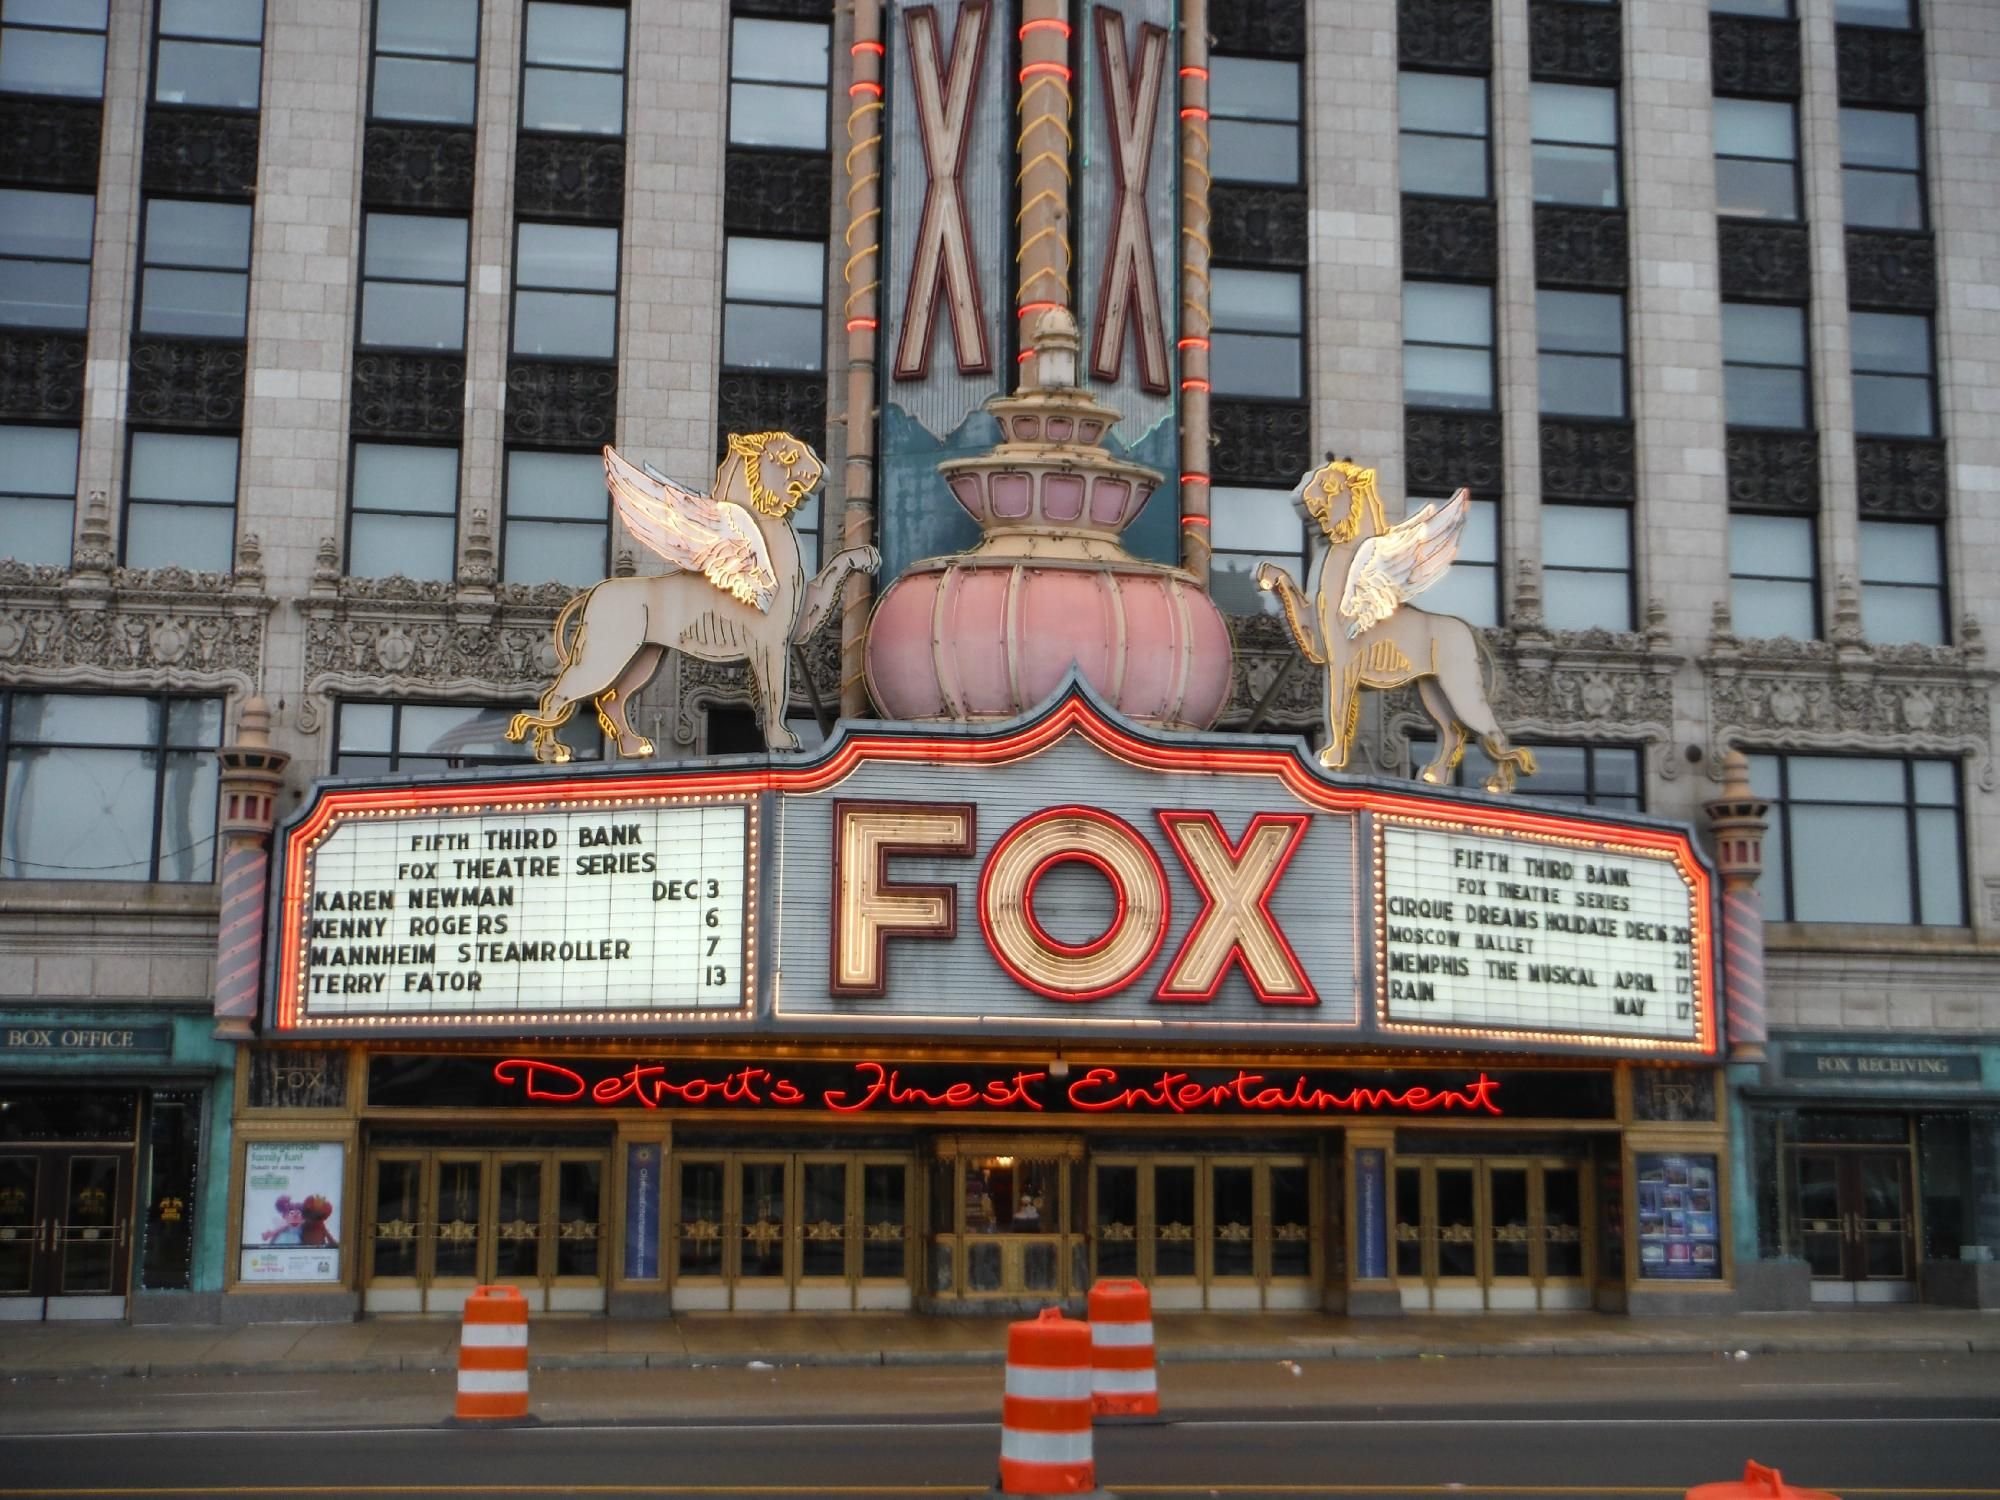 Fox Theater Detroit Mi Detroit Rock City Detroit Theatre